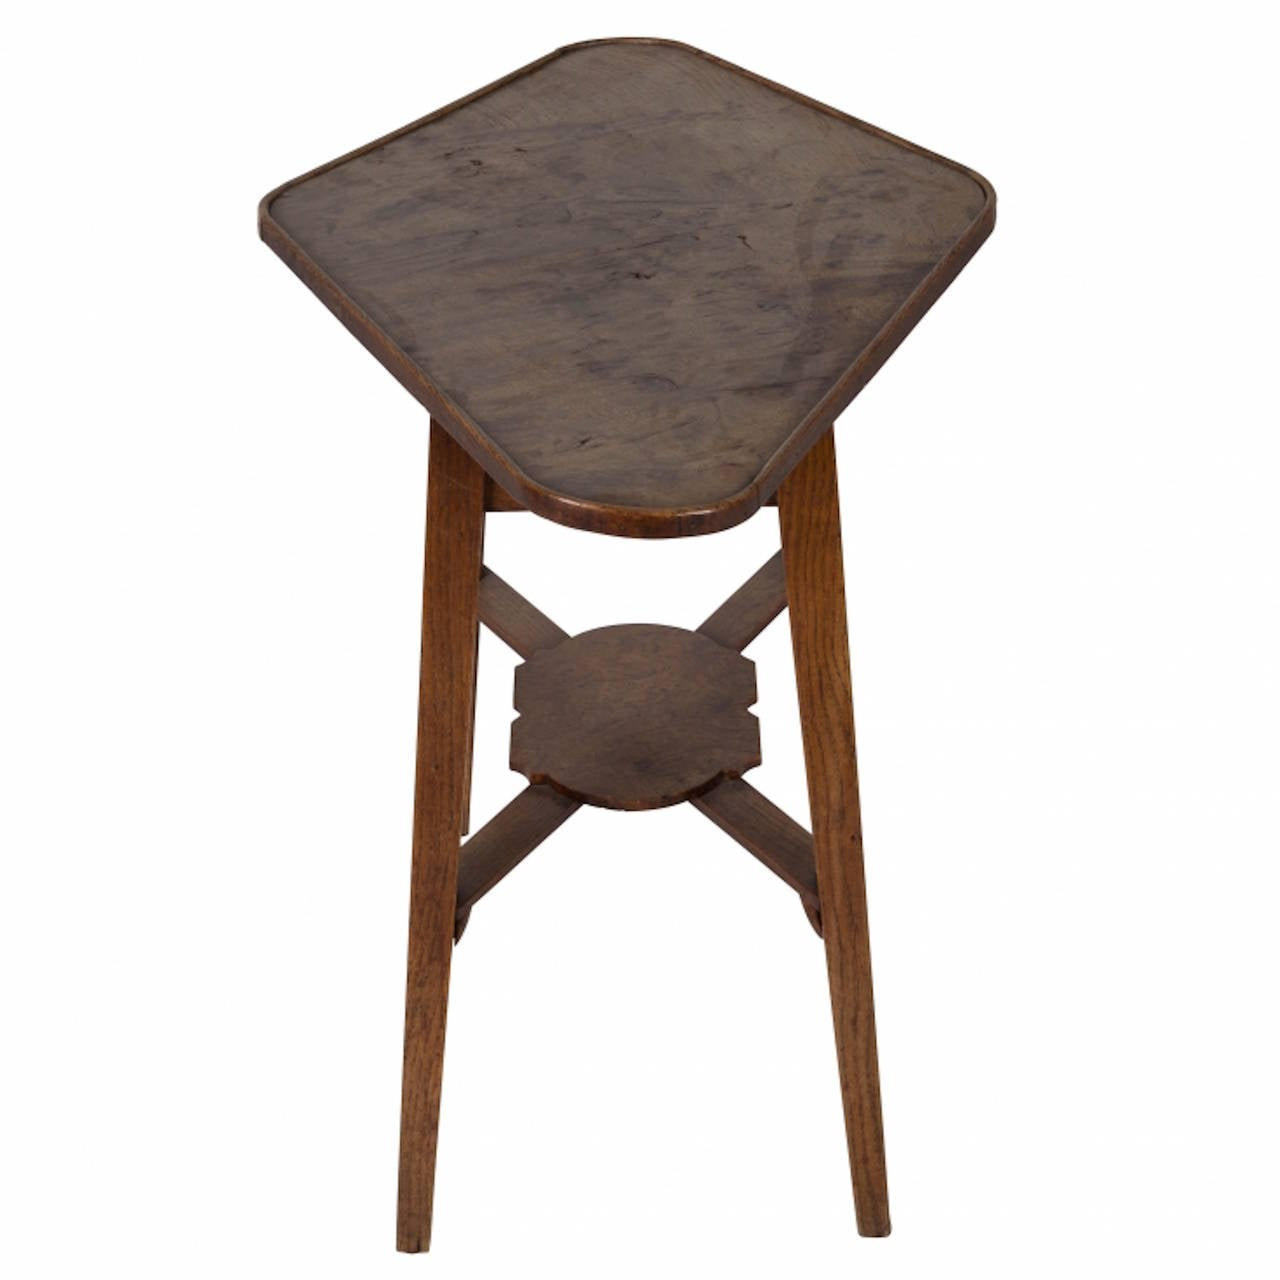 weird shaped chairs tripp trapp chair instructions an unusual oval burr oak side table c 1860 at 1stdibs